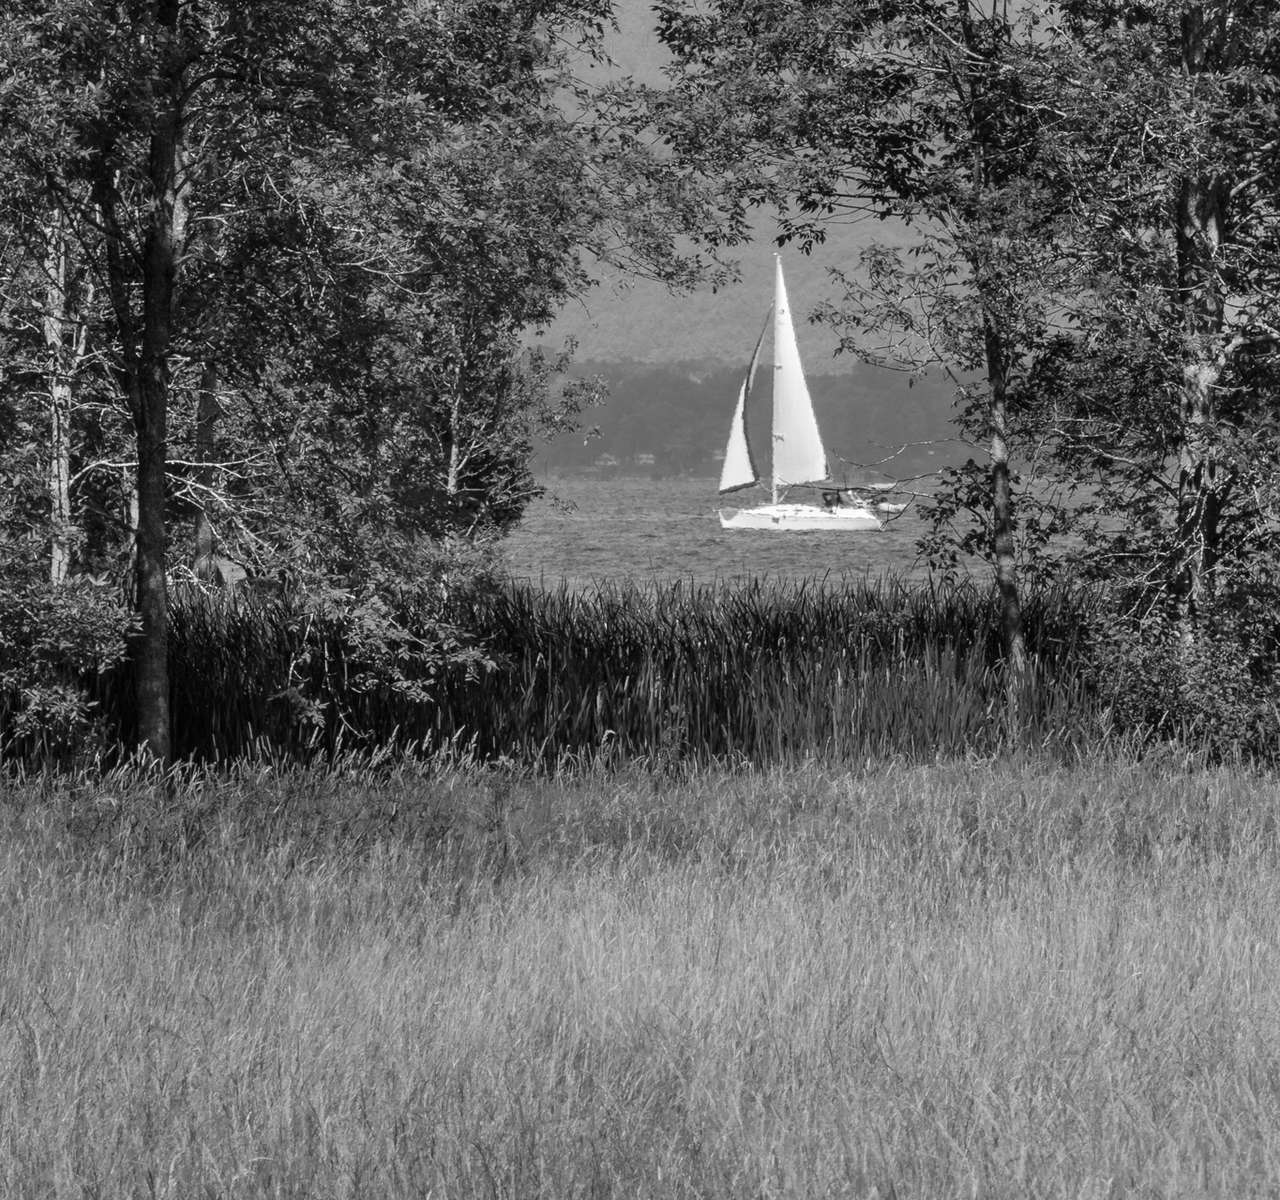 Sail by Shelburne Farm